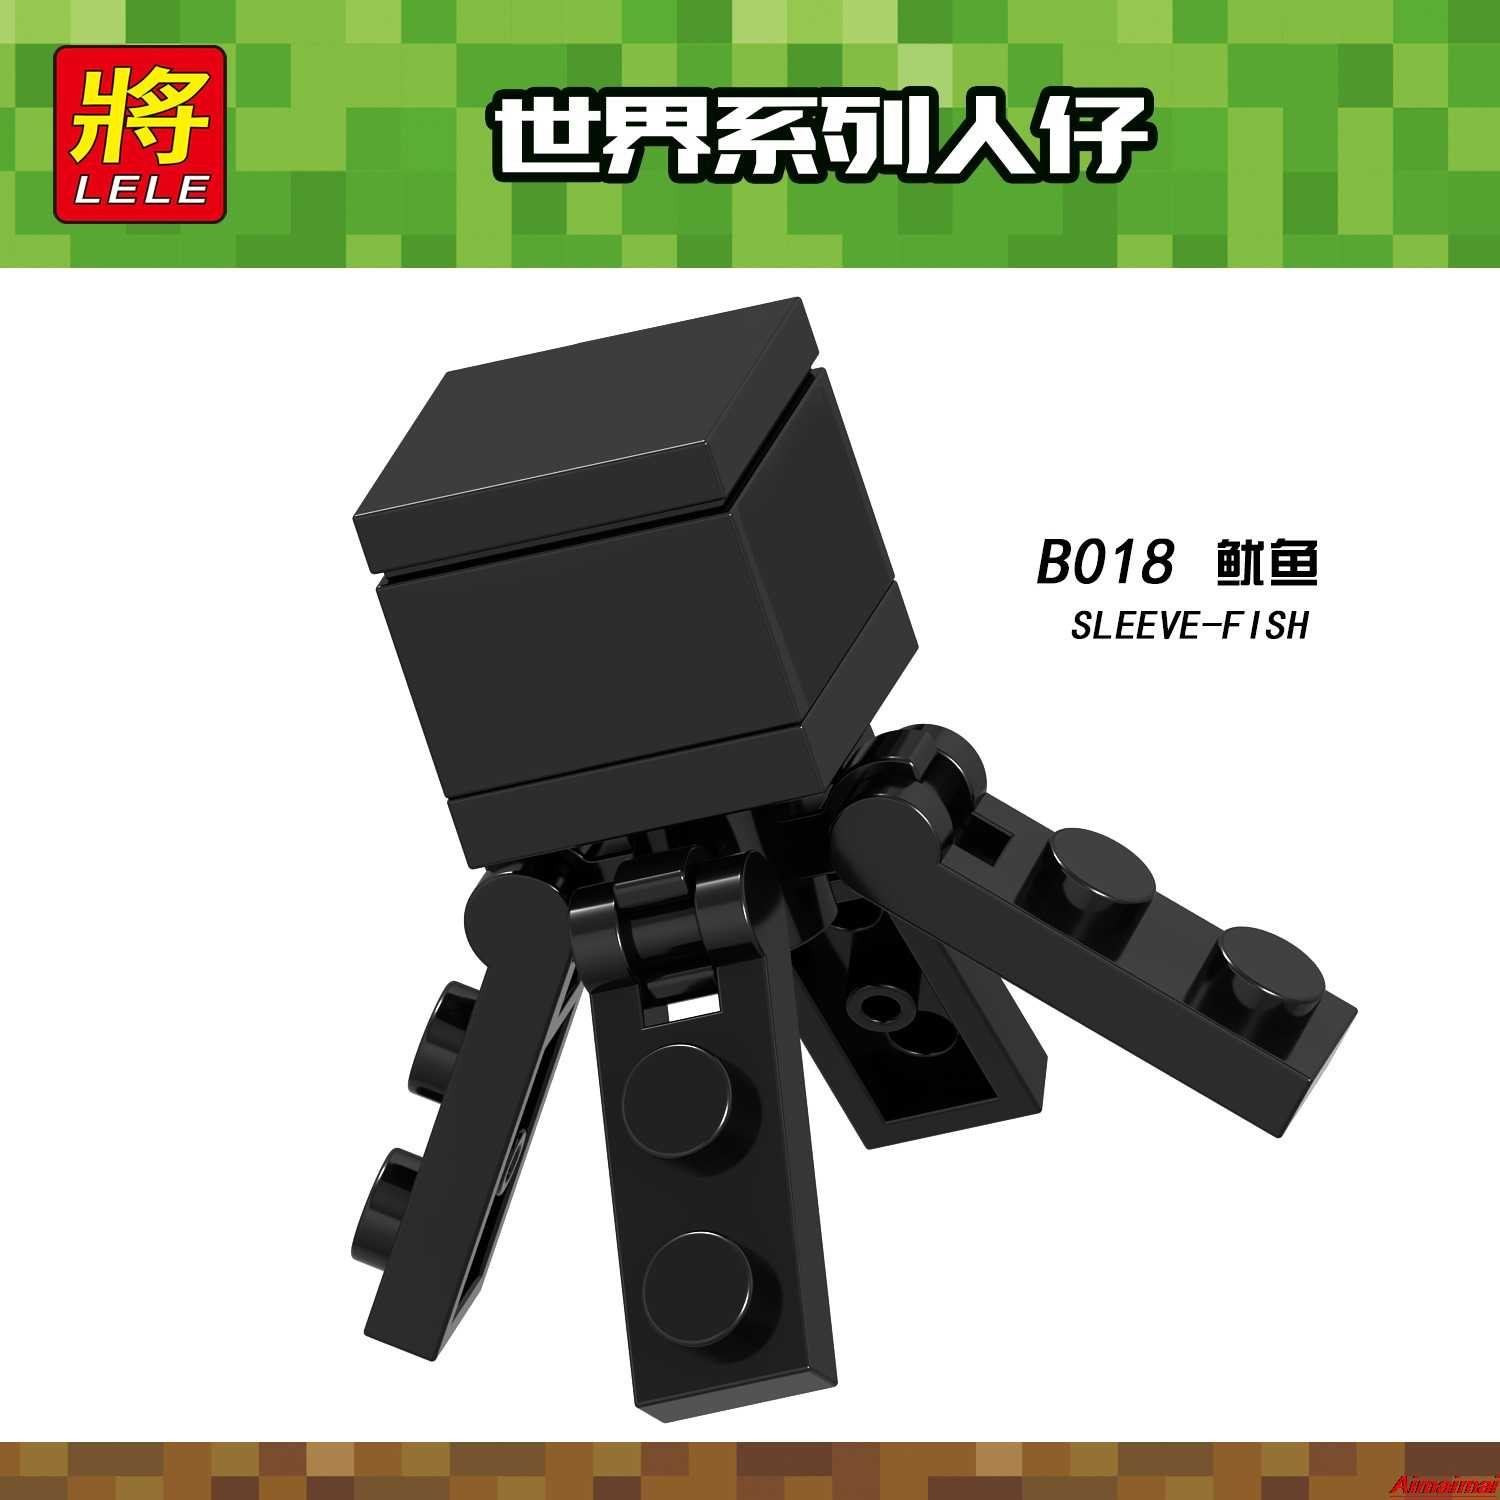 Sleeve Fish legoing Minecrafts Blocks Building Figure My World Toys Educational Model Creative Figurine Birthday Gift Minecrafts